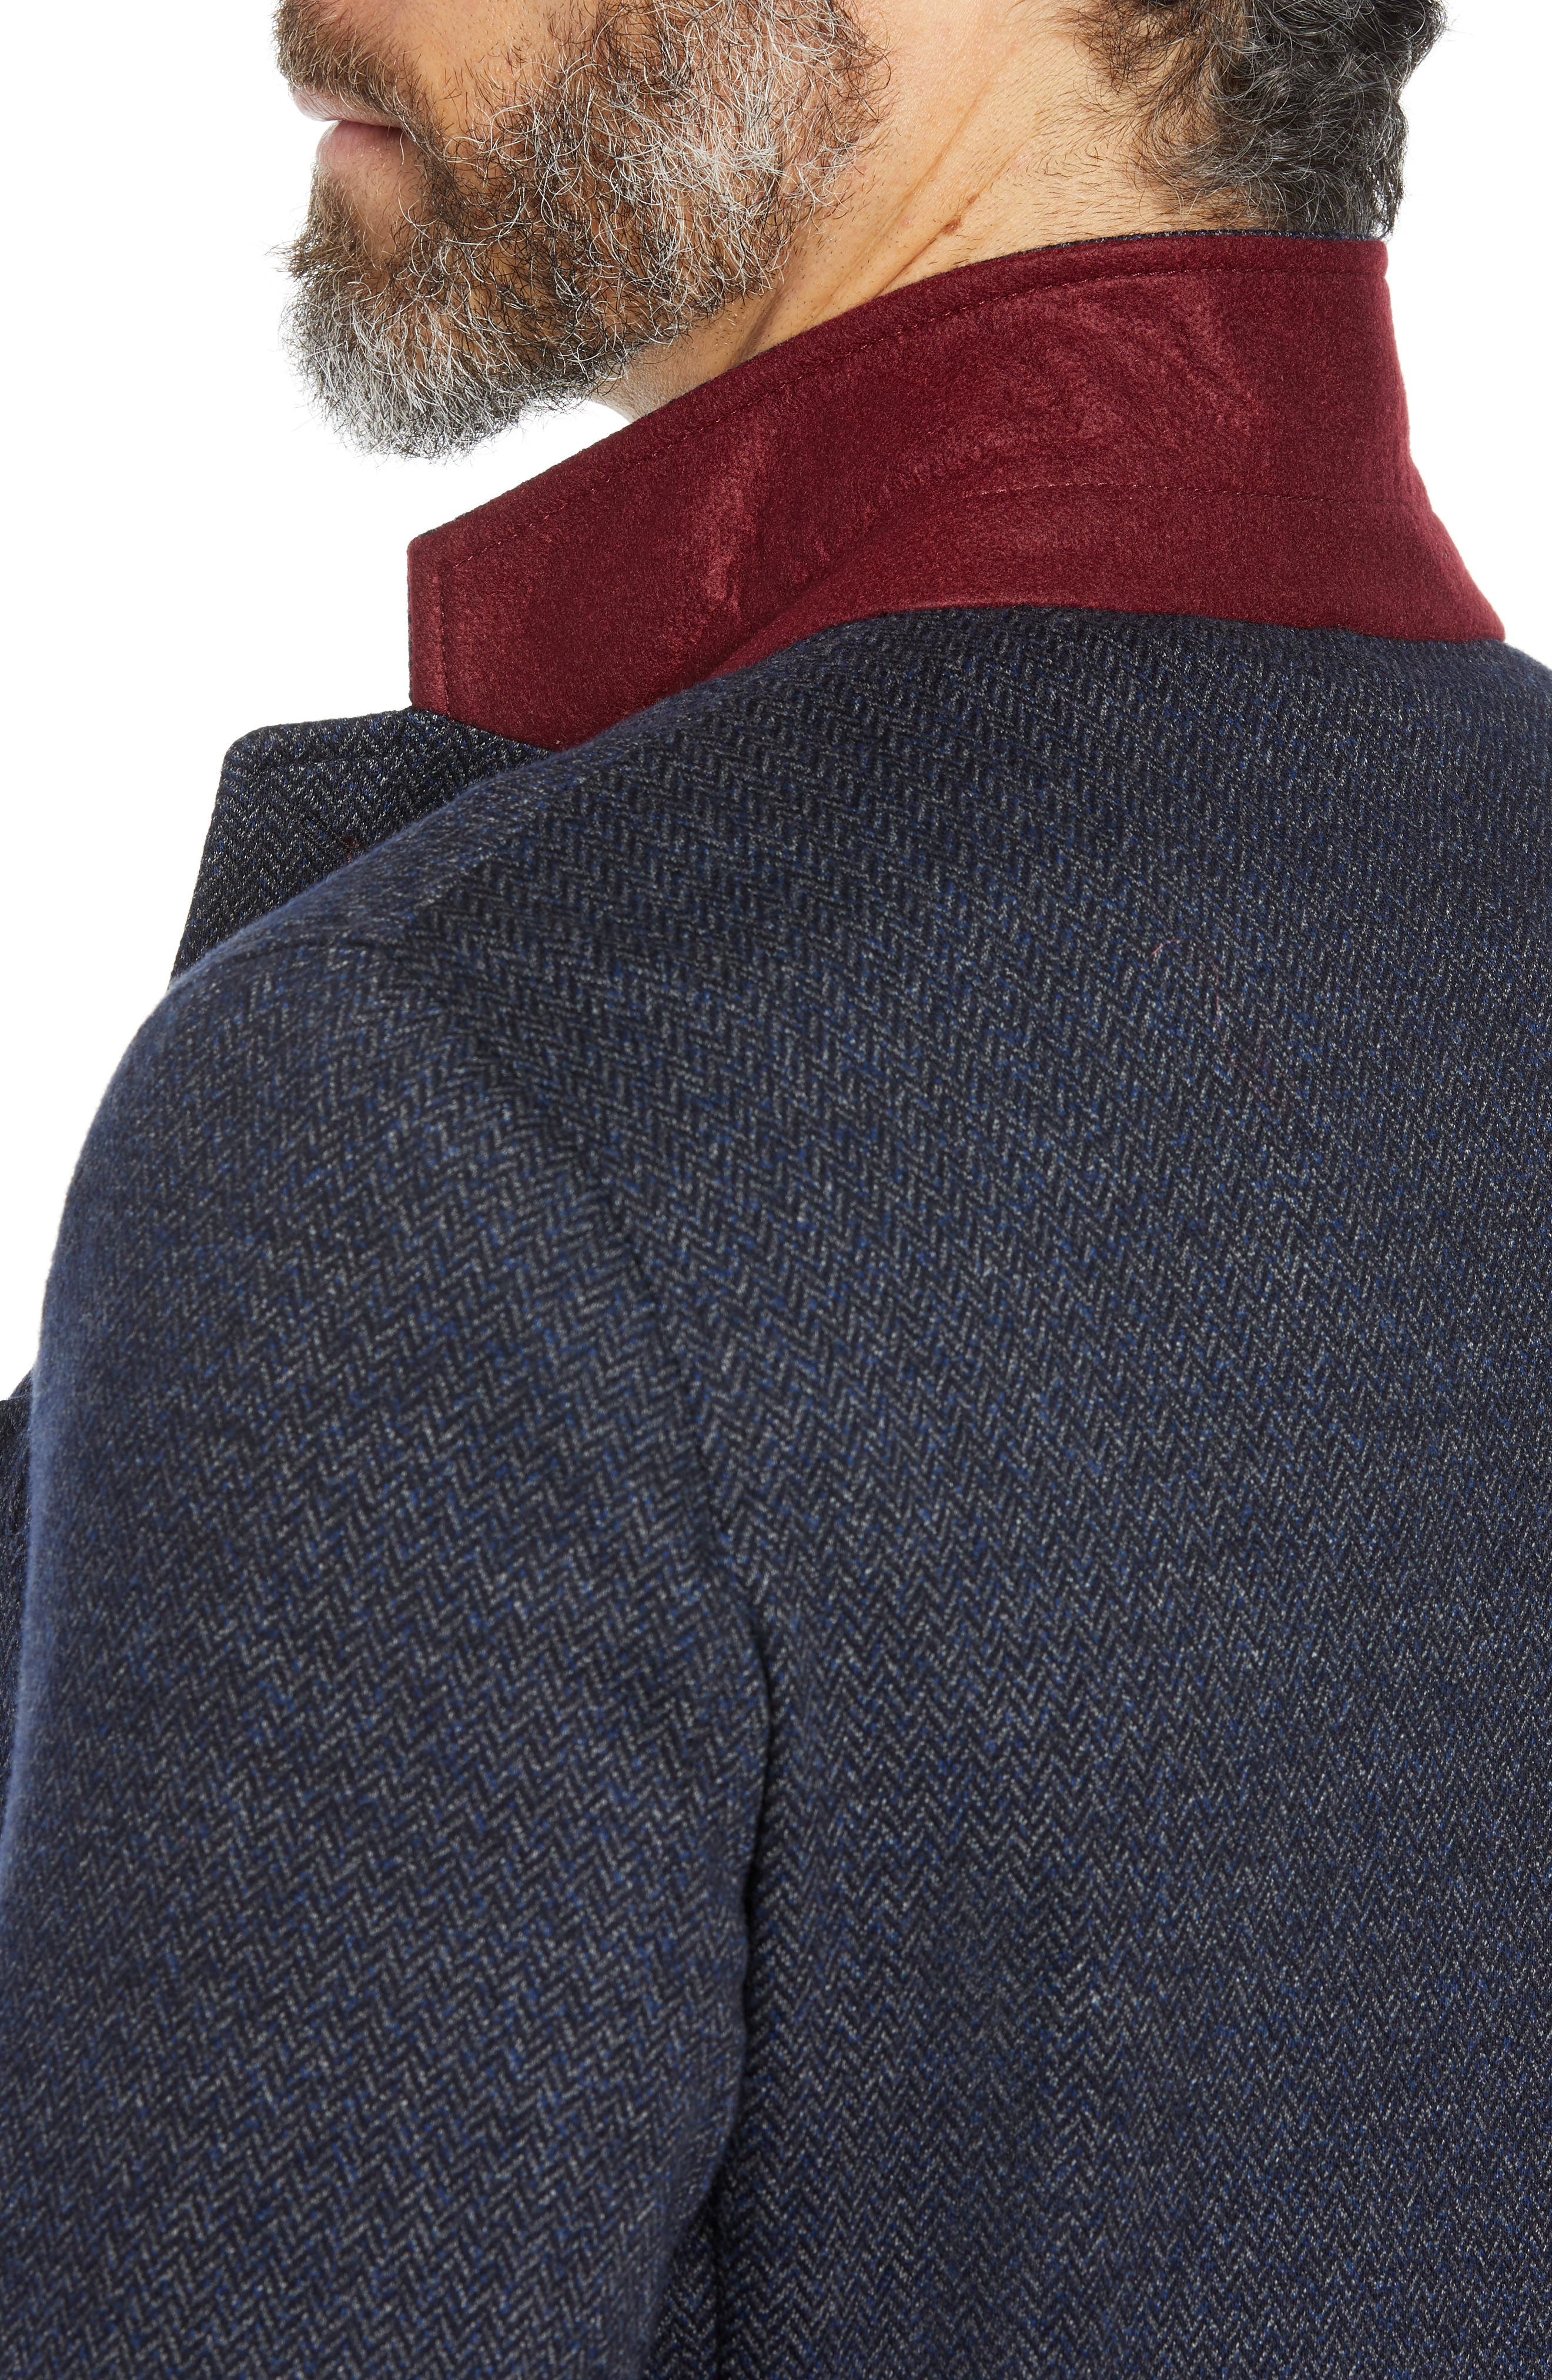 Cotton & Wool Blazer,                             Alternate thumbnail 4, color,                             NIGHT BLUE